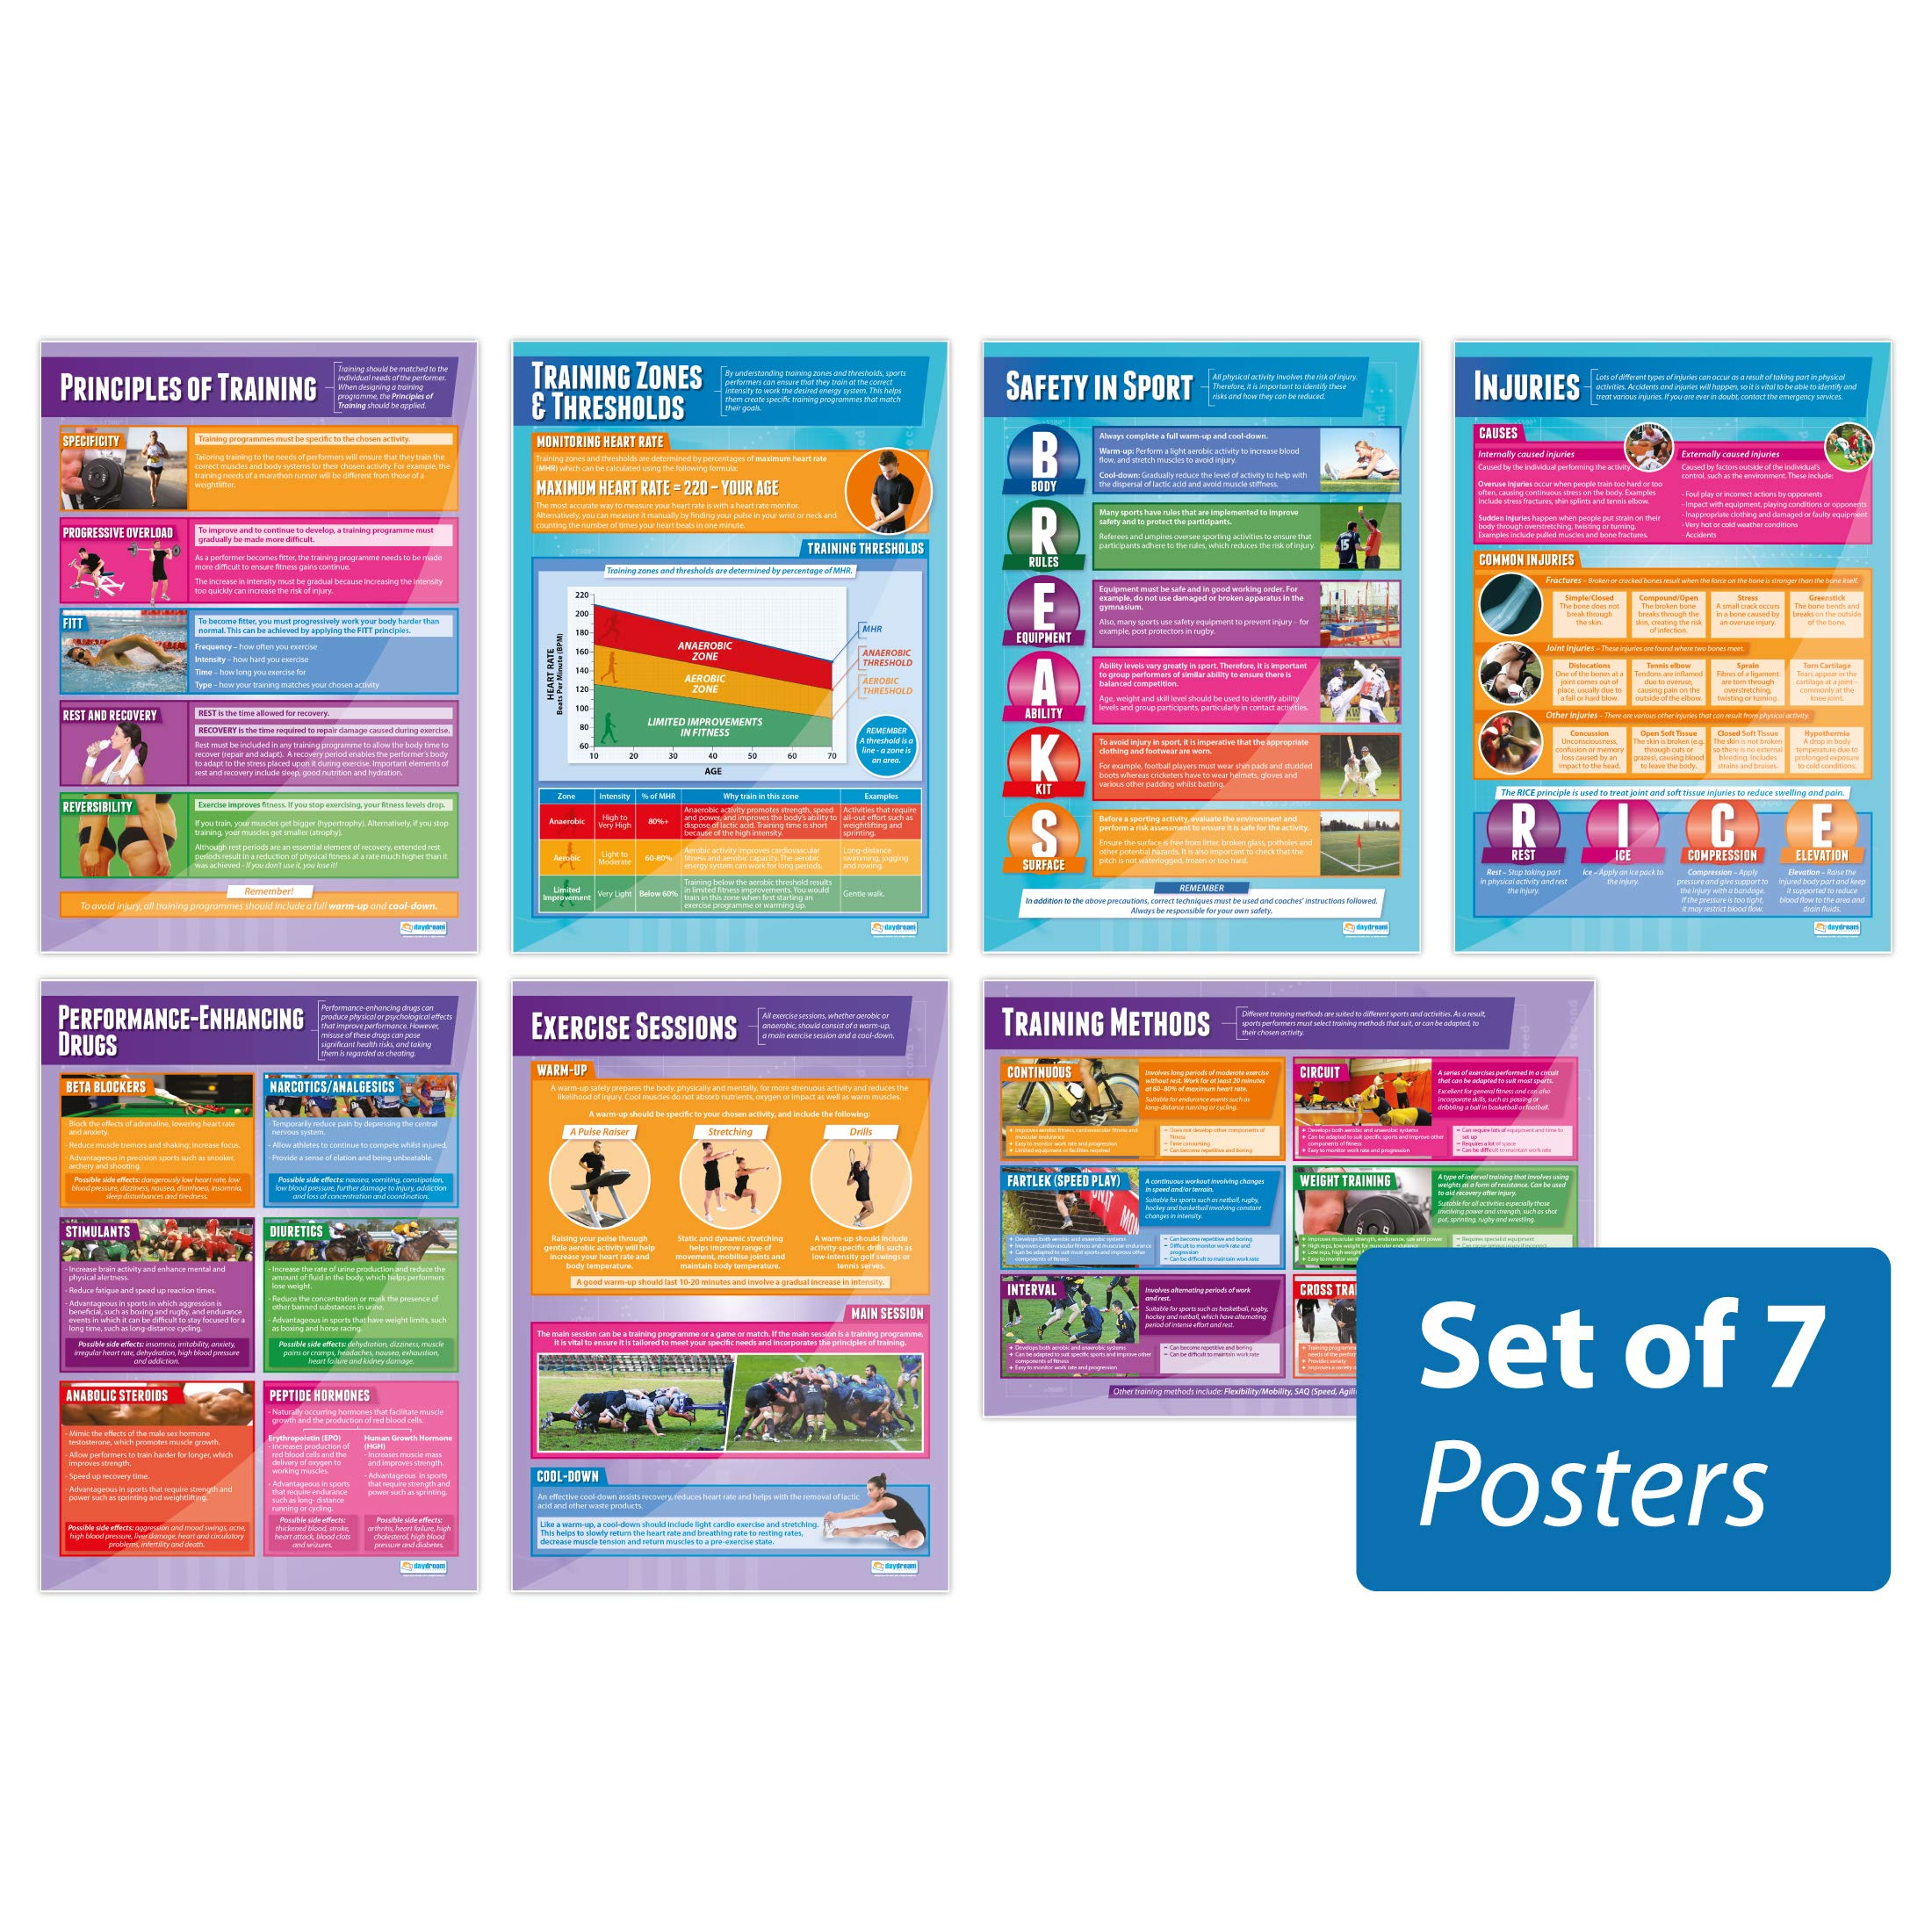 Physical Training Posters - Set of 7 | PE Posters | Laminated Gloss Paper Measuring 33'' x 23.5'' | Physical Education Charts for The Classroom | Education Charts by Daydream Education